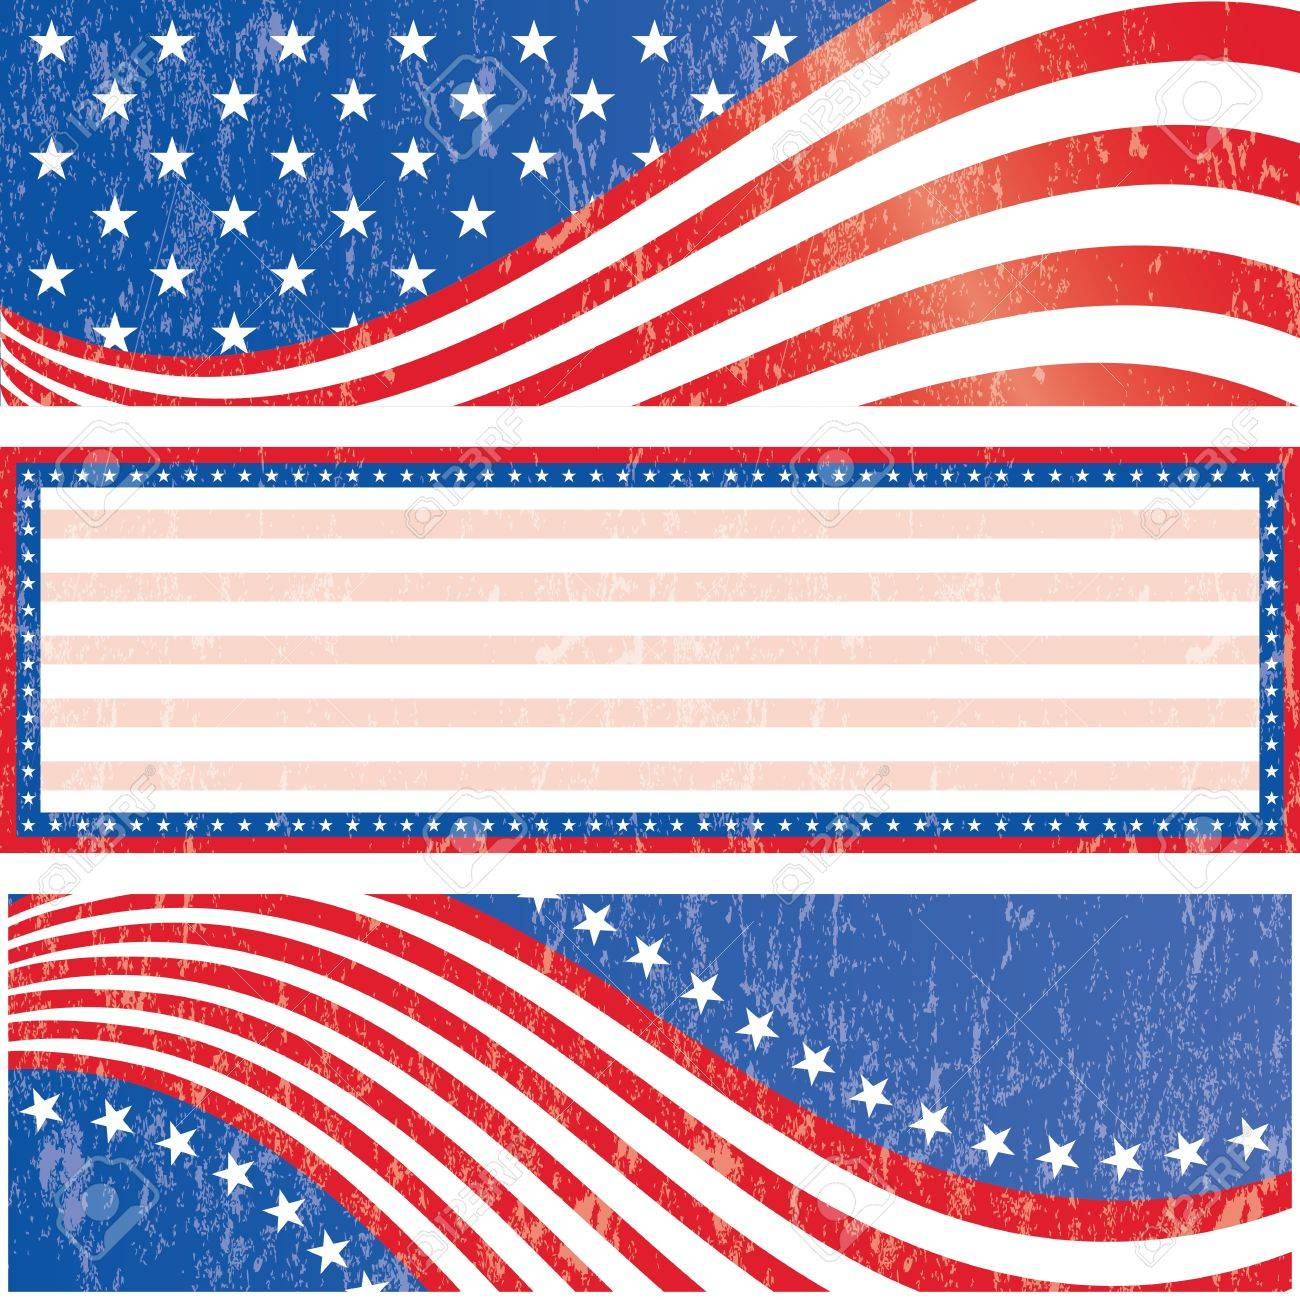 American flag banners set grunge style  Grunge effect can be removed Stock Vector - 16651340